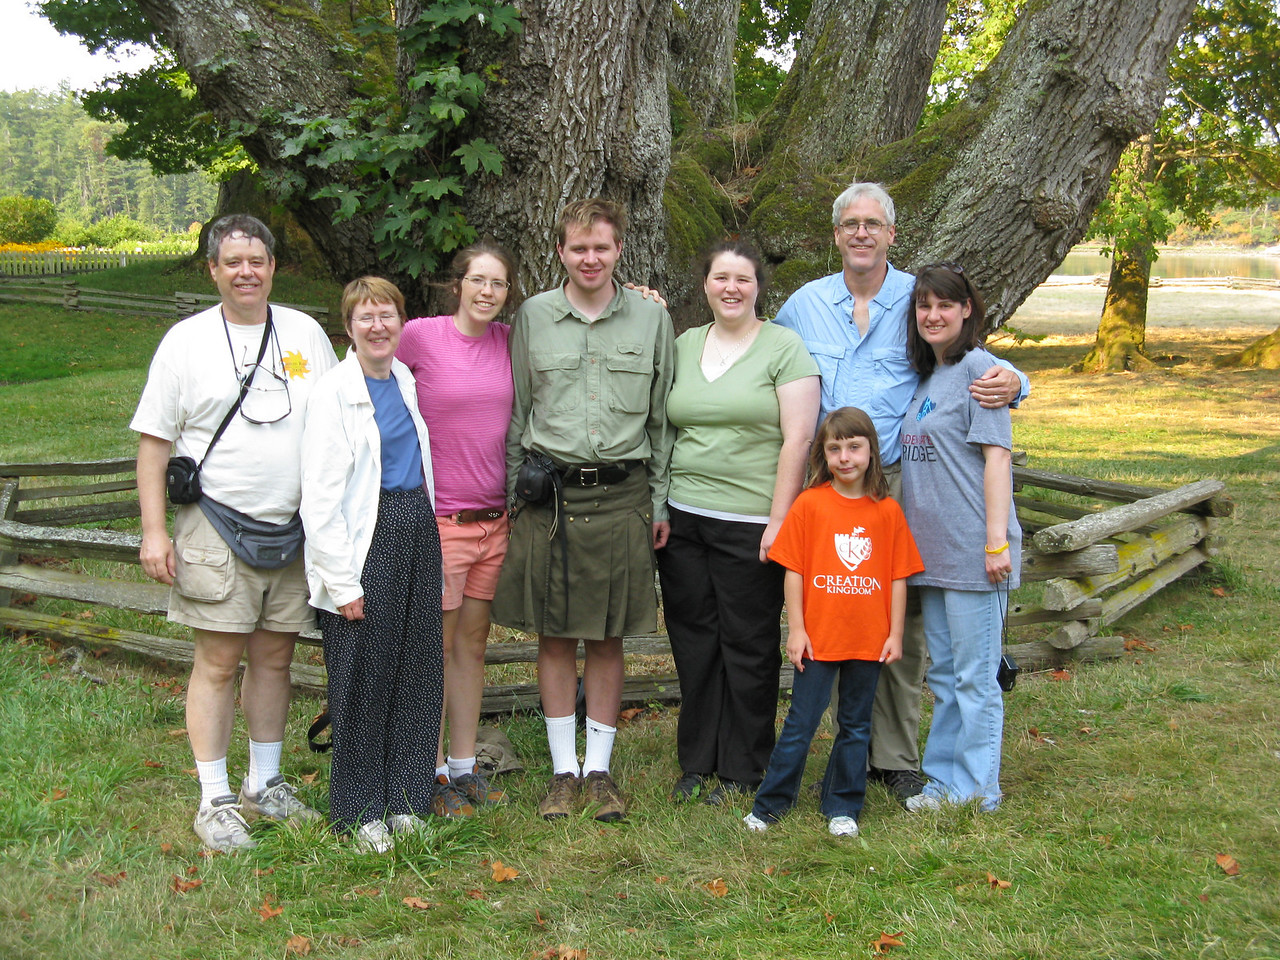 On Tuesday, we toured English Camp on the north west side of San Juan Island.  Our group is standing in front of a majestic maple tree. (L to R)  Martin, Mary, Ann, Nathan, Keegan, Glenn, Abby (in front) and Sonia.